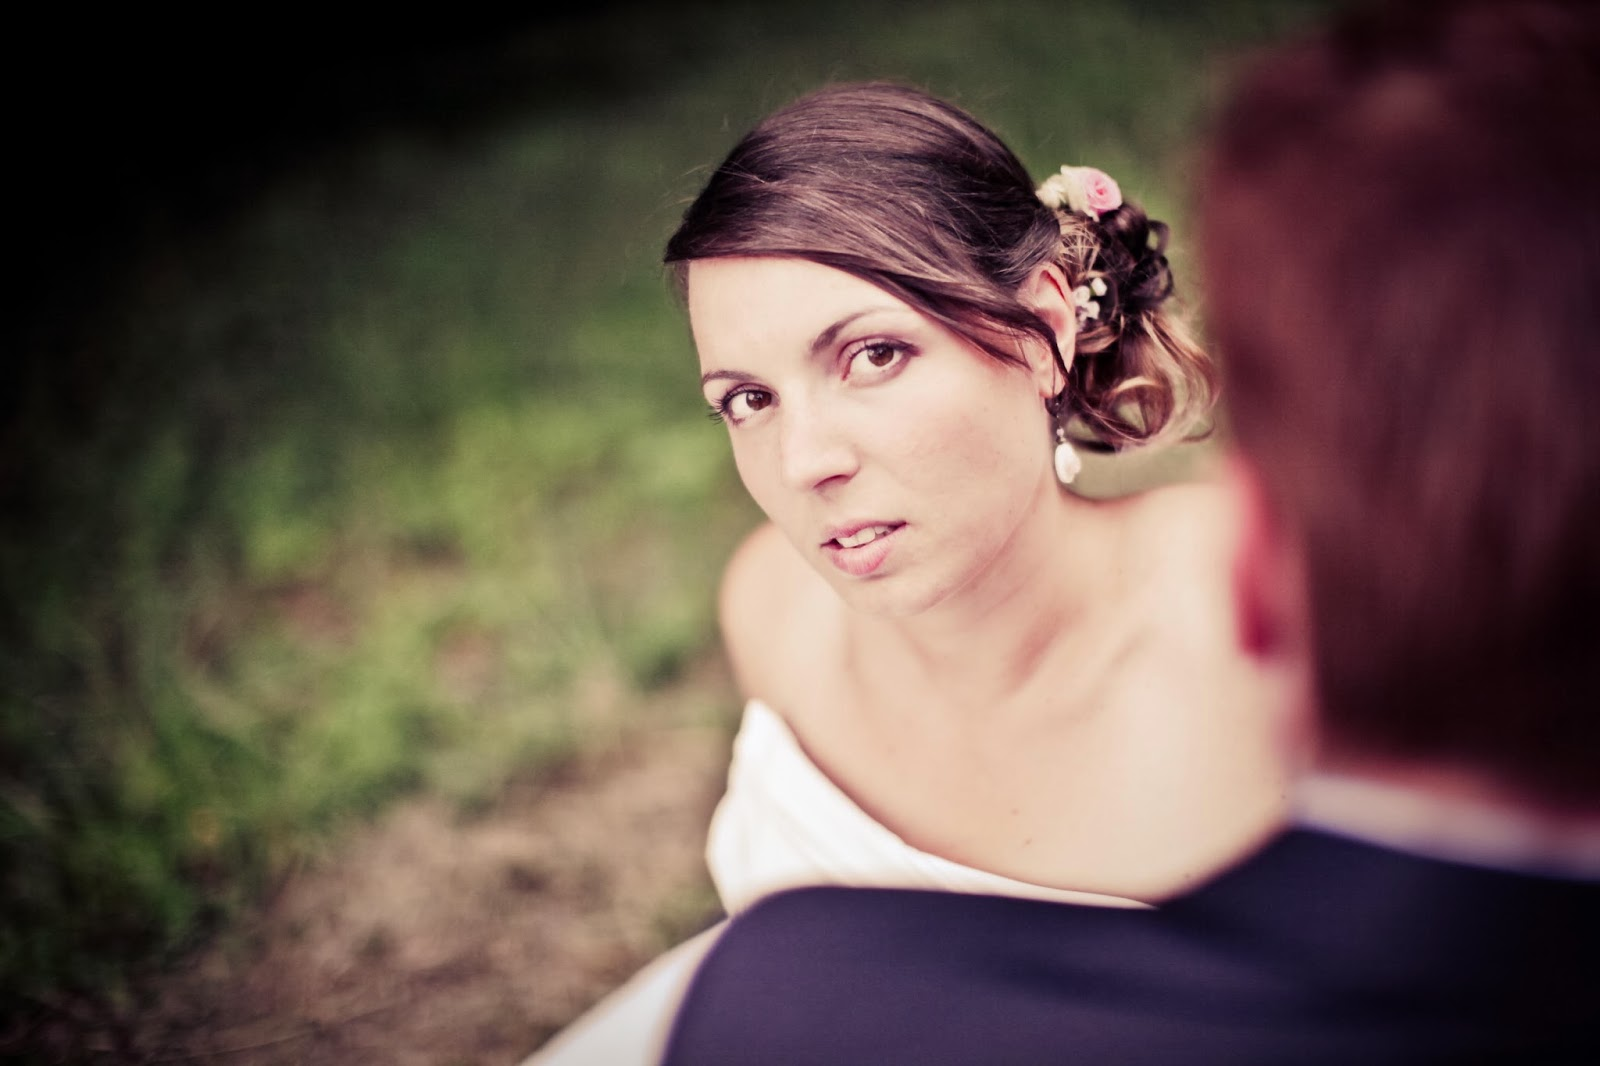 The bride looking at the camera, retro styled photography by Elisabeth Perotin